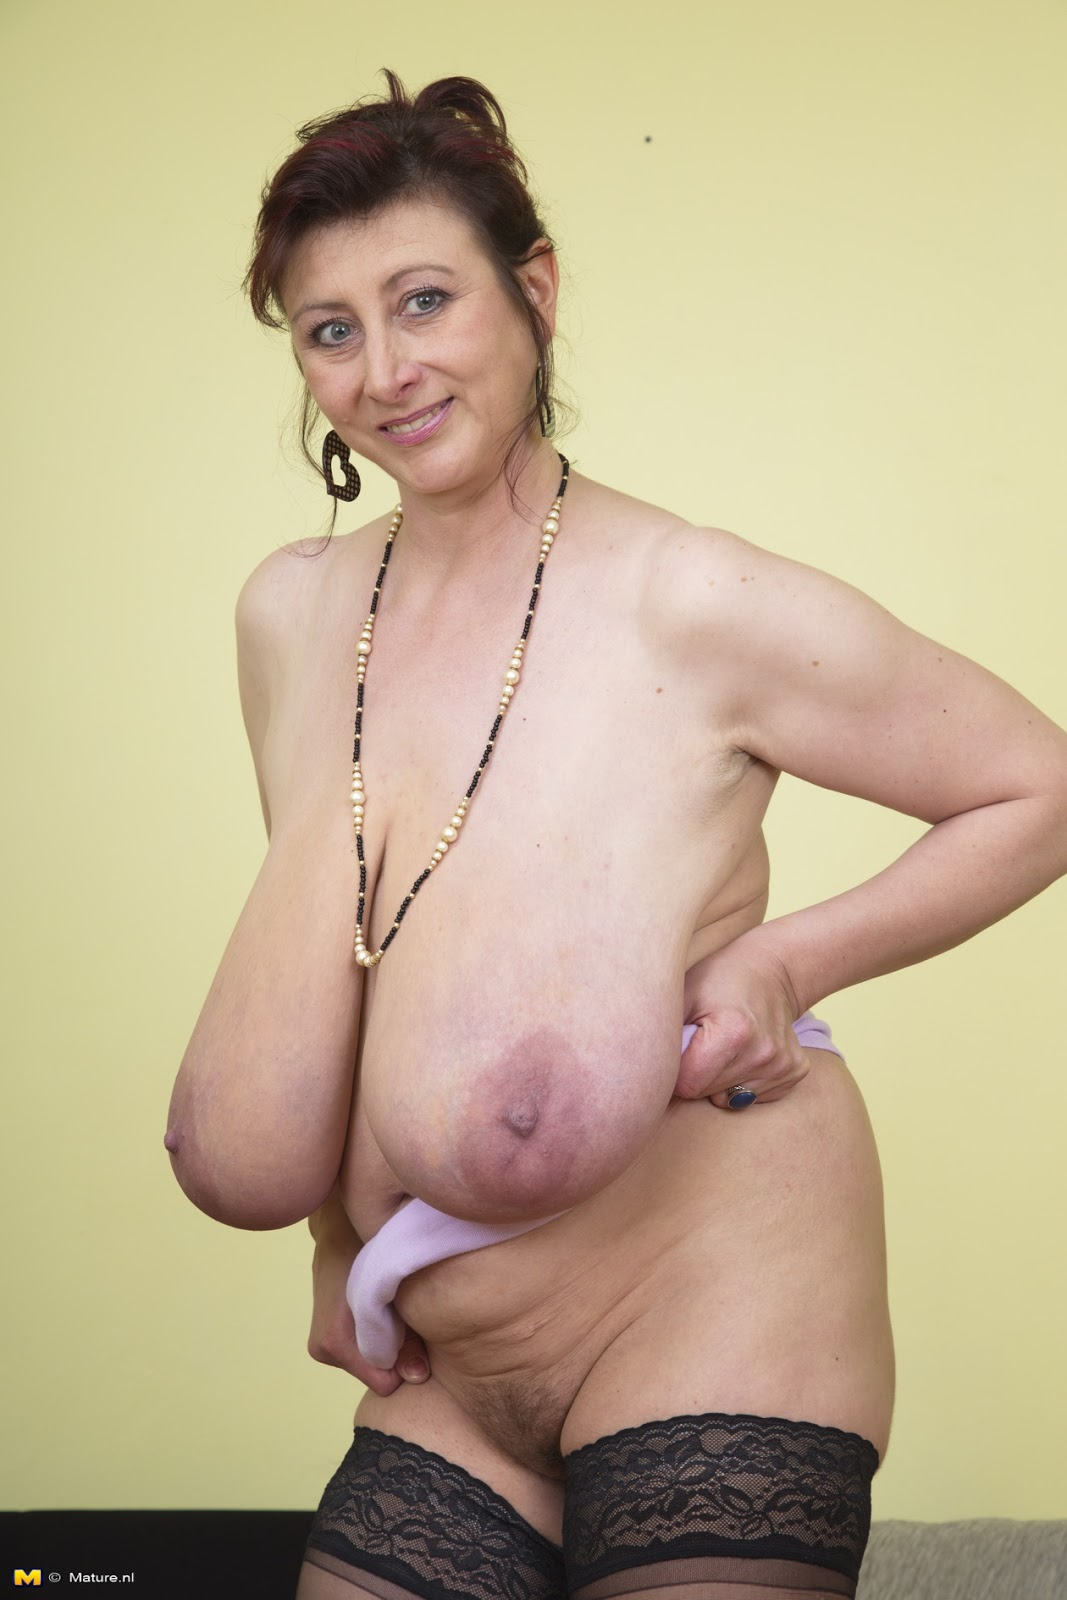 Archiveoffoldwomenblogspotcom Huge Mature Boobs Of Jana P-2424